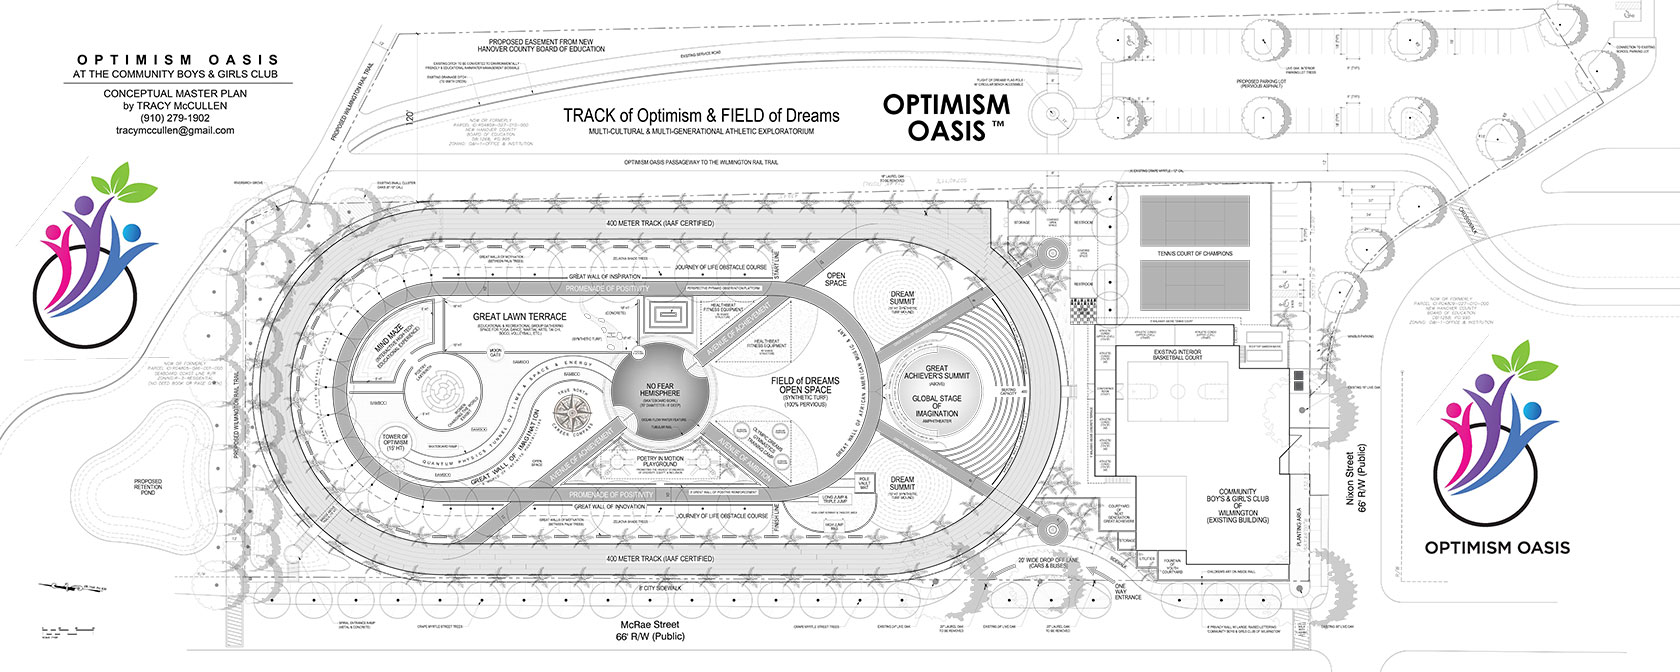 Wilmington Community Boys and Girls Club Optimism Oasis track and field conceptual rendering